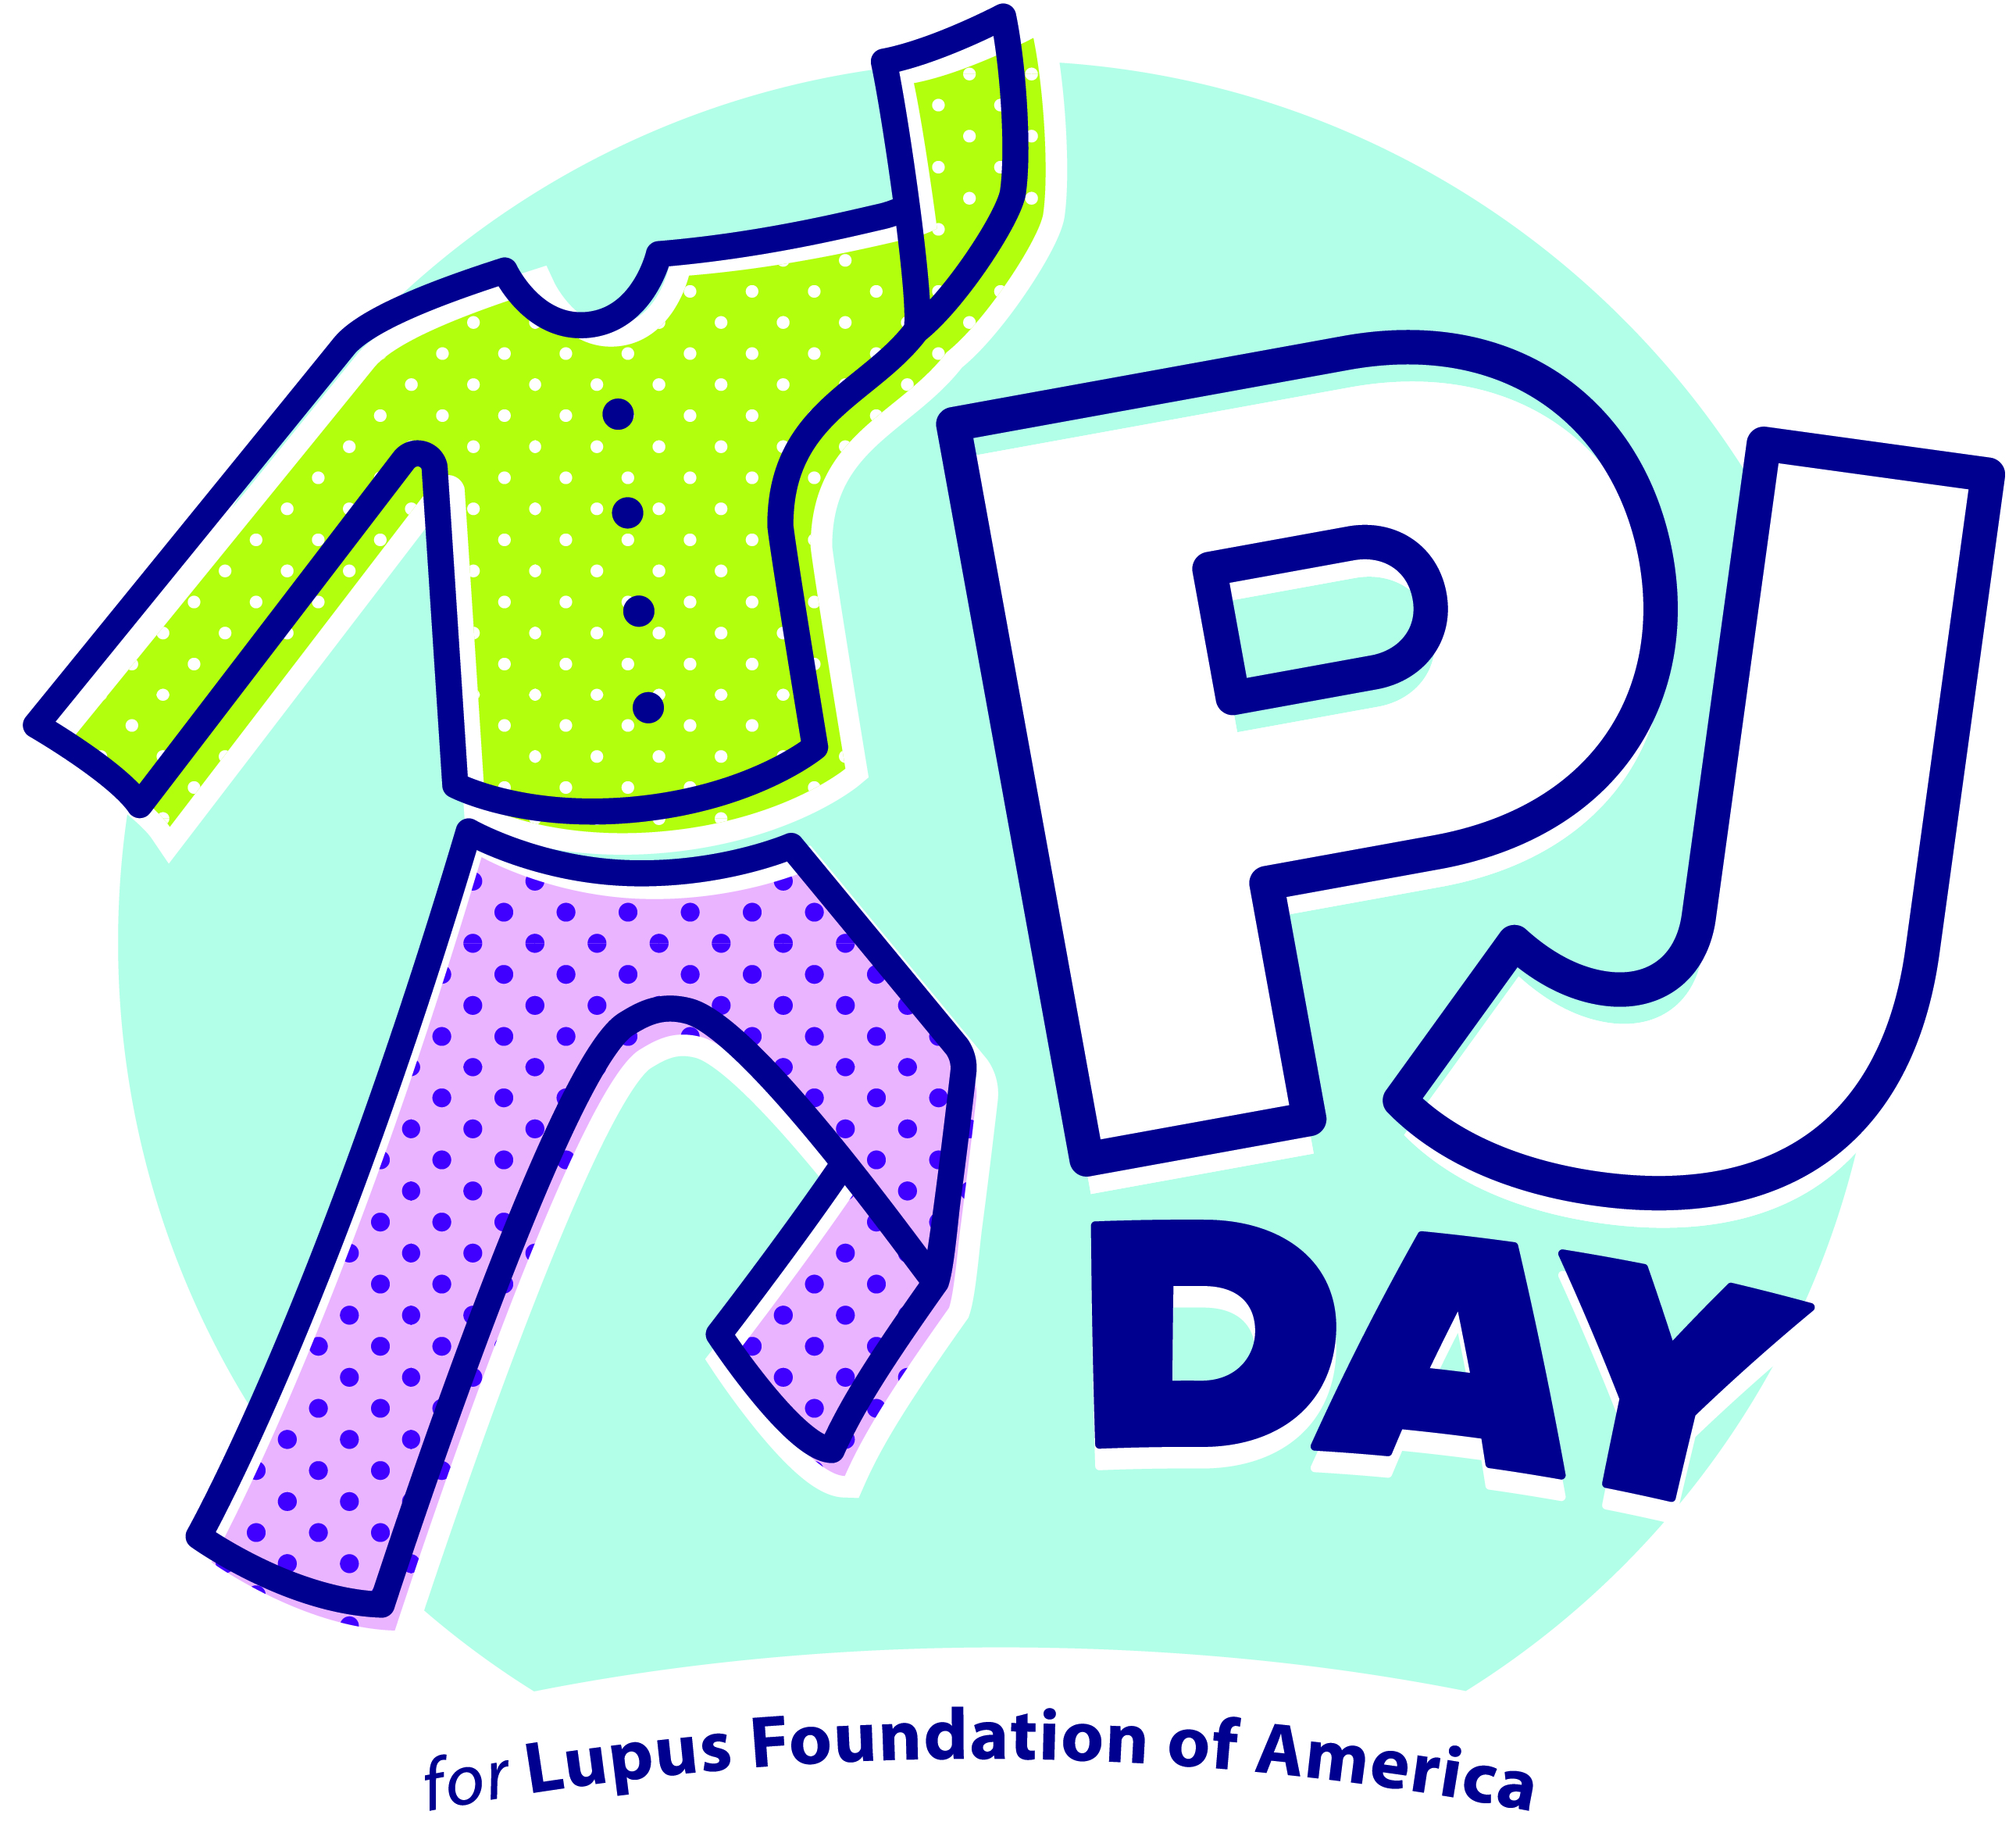 pajama day Pj day lupus foundation of america jpg.